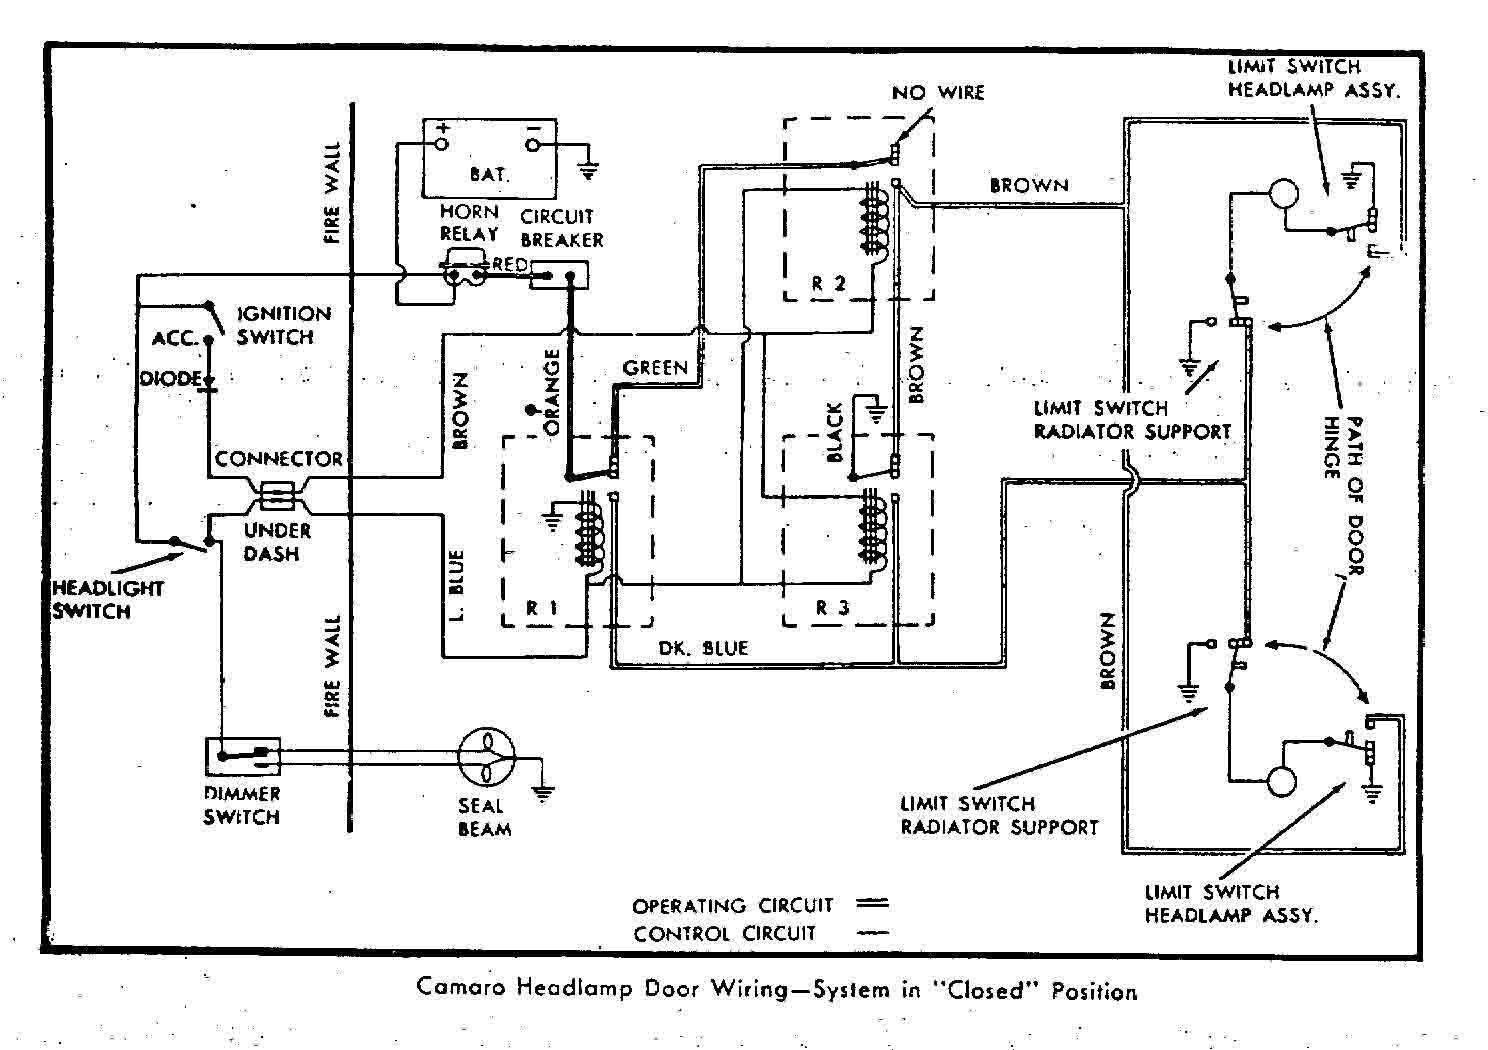 hight resolution of 1967 camaro wiring diagram wiring diagram blog1967 camaro tach wiring diagram schema diagram database 1967 camaro